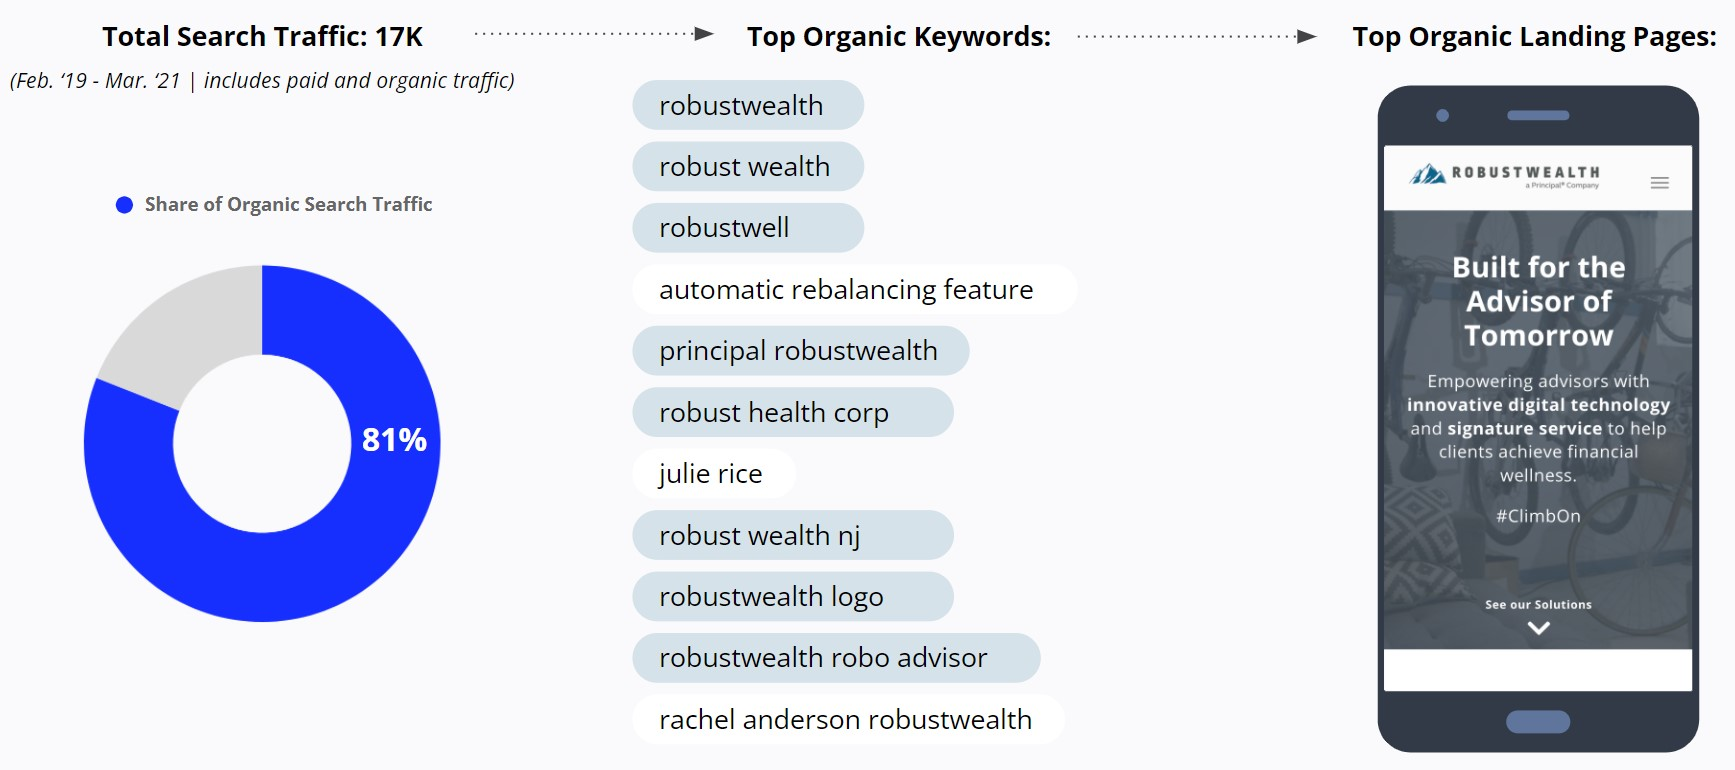 RobustWealth - Brand Name Searches